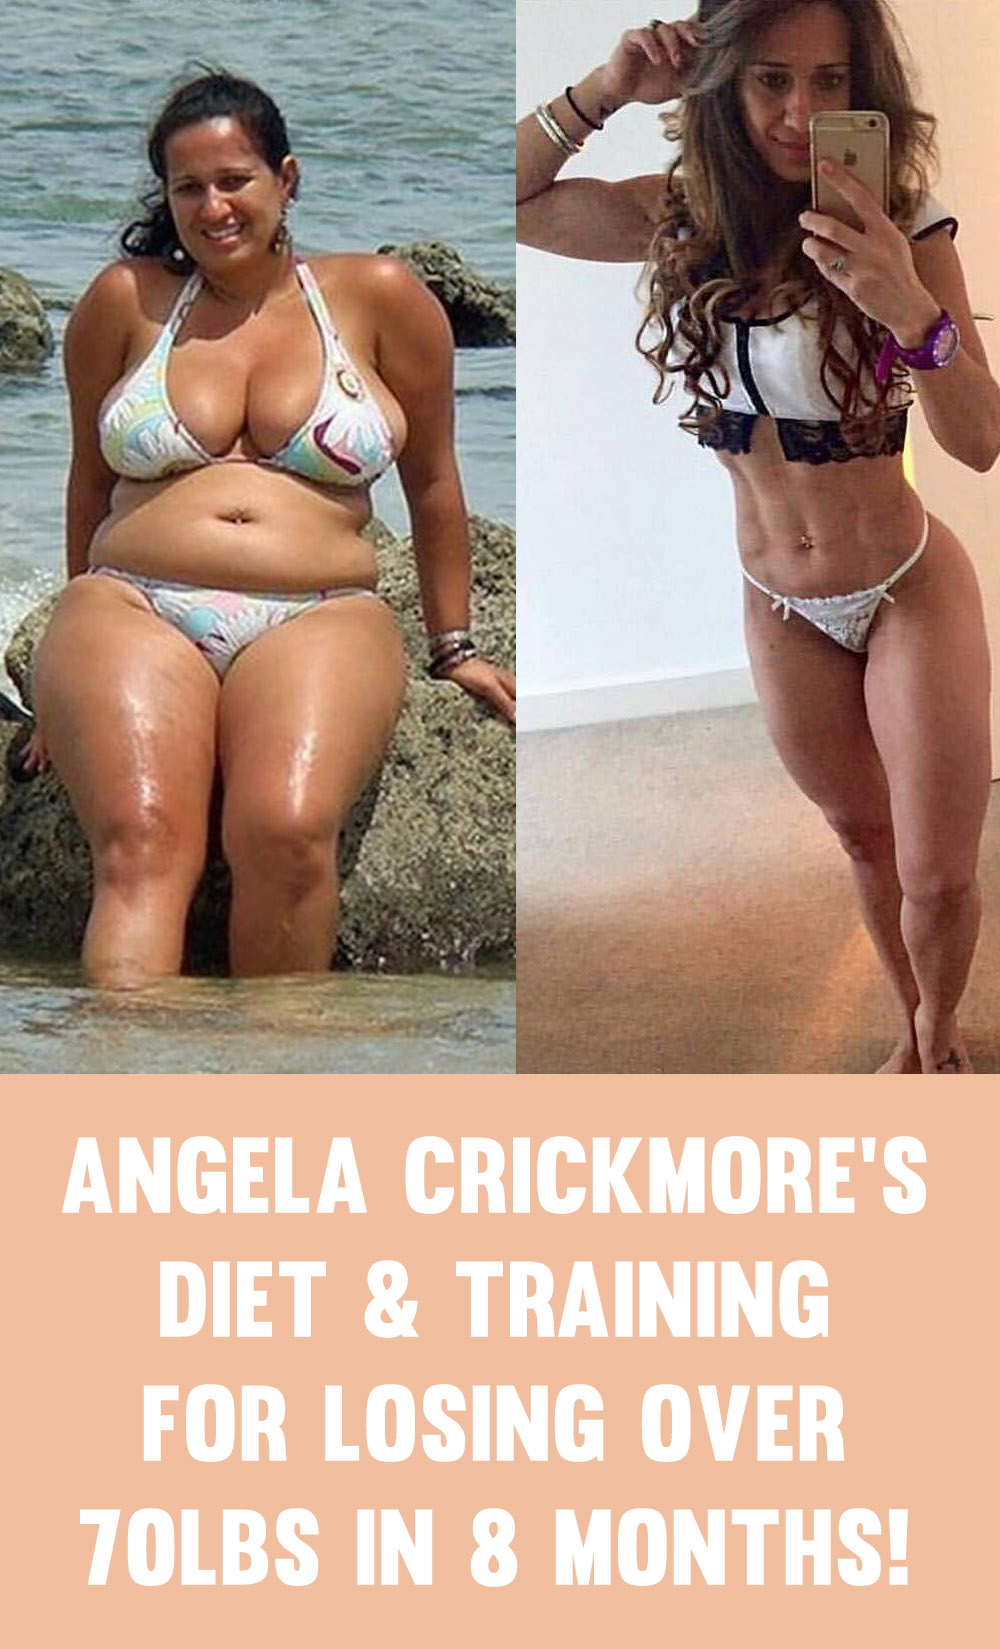 Angela Crickmore's Diet & Training Routine For Losing 70lbs In 8 Months!